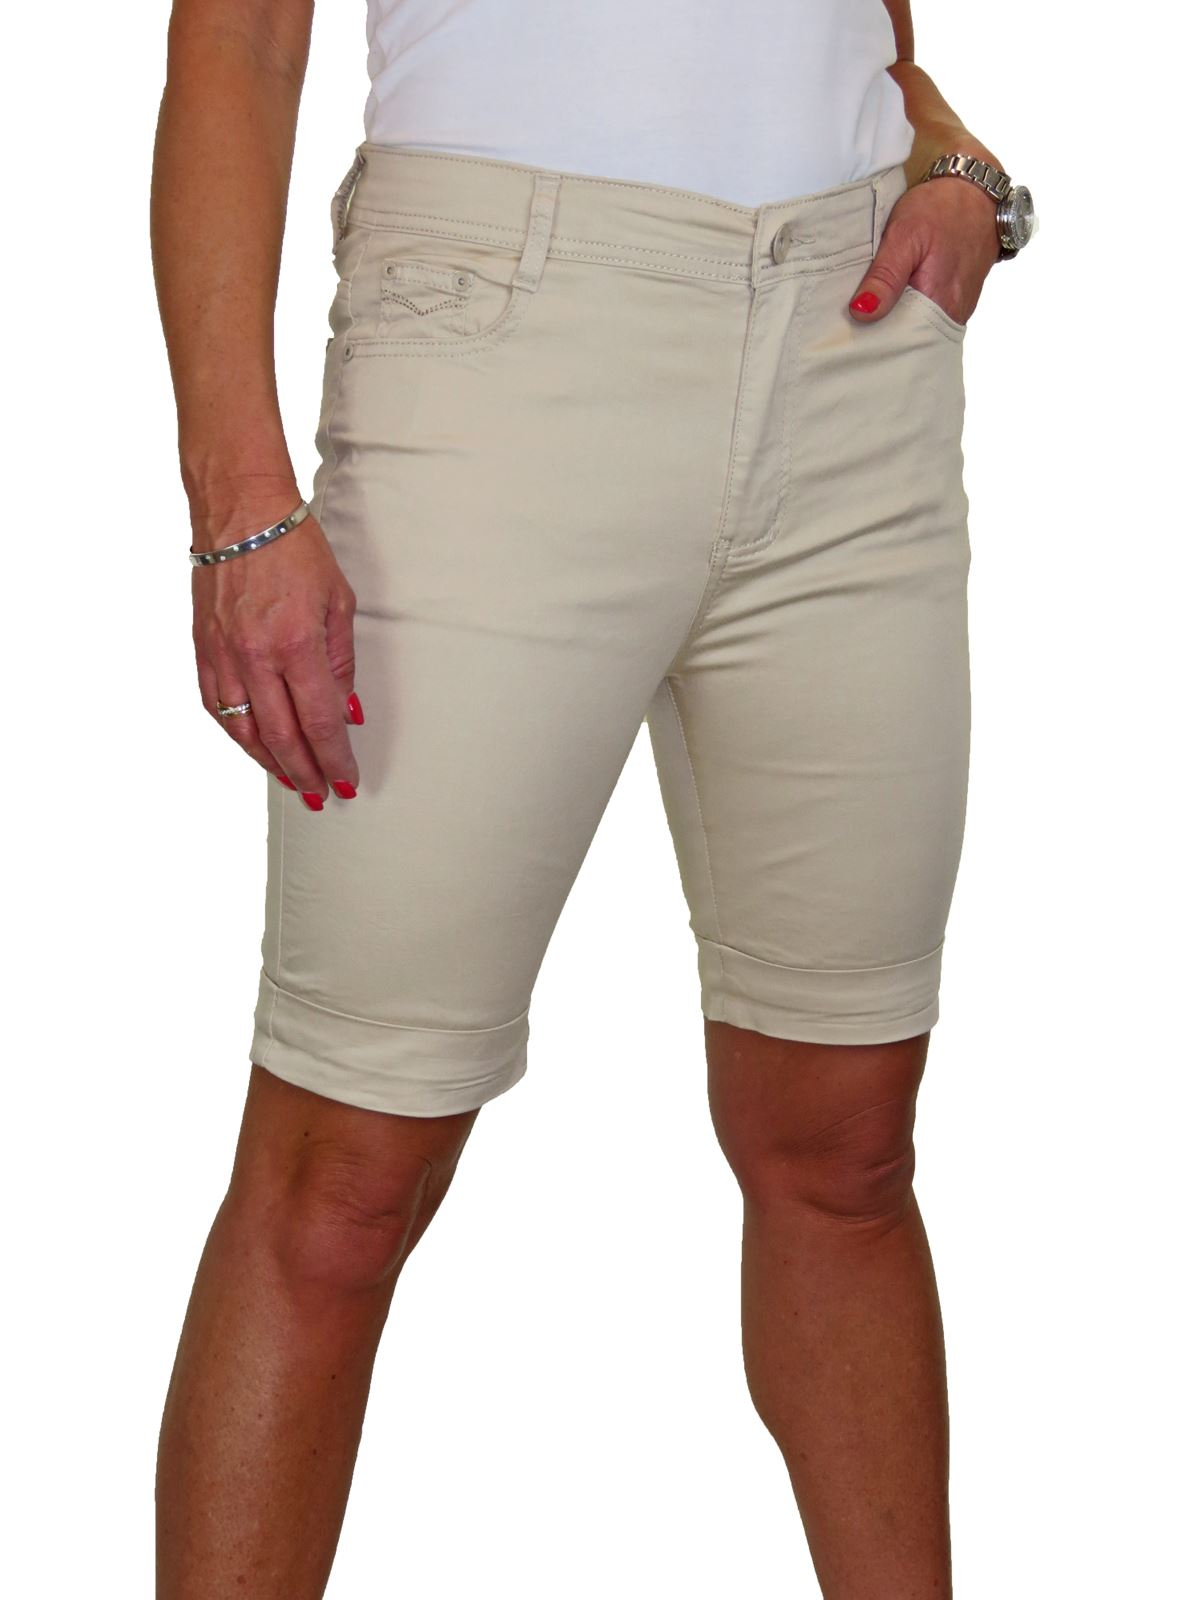 Ladies-Stretch-Stretch-Plus-Size-Jeans-Style-Shorts-Chino-Sheen-14-24 thumbnail 5